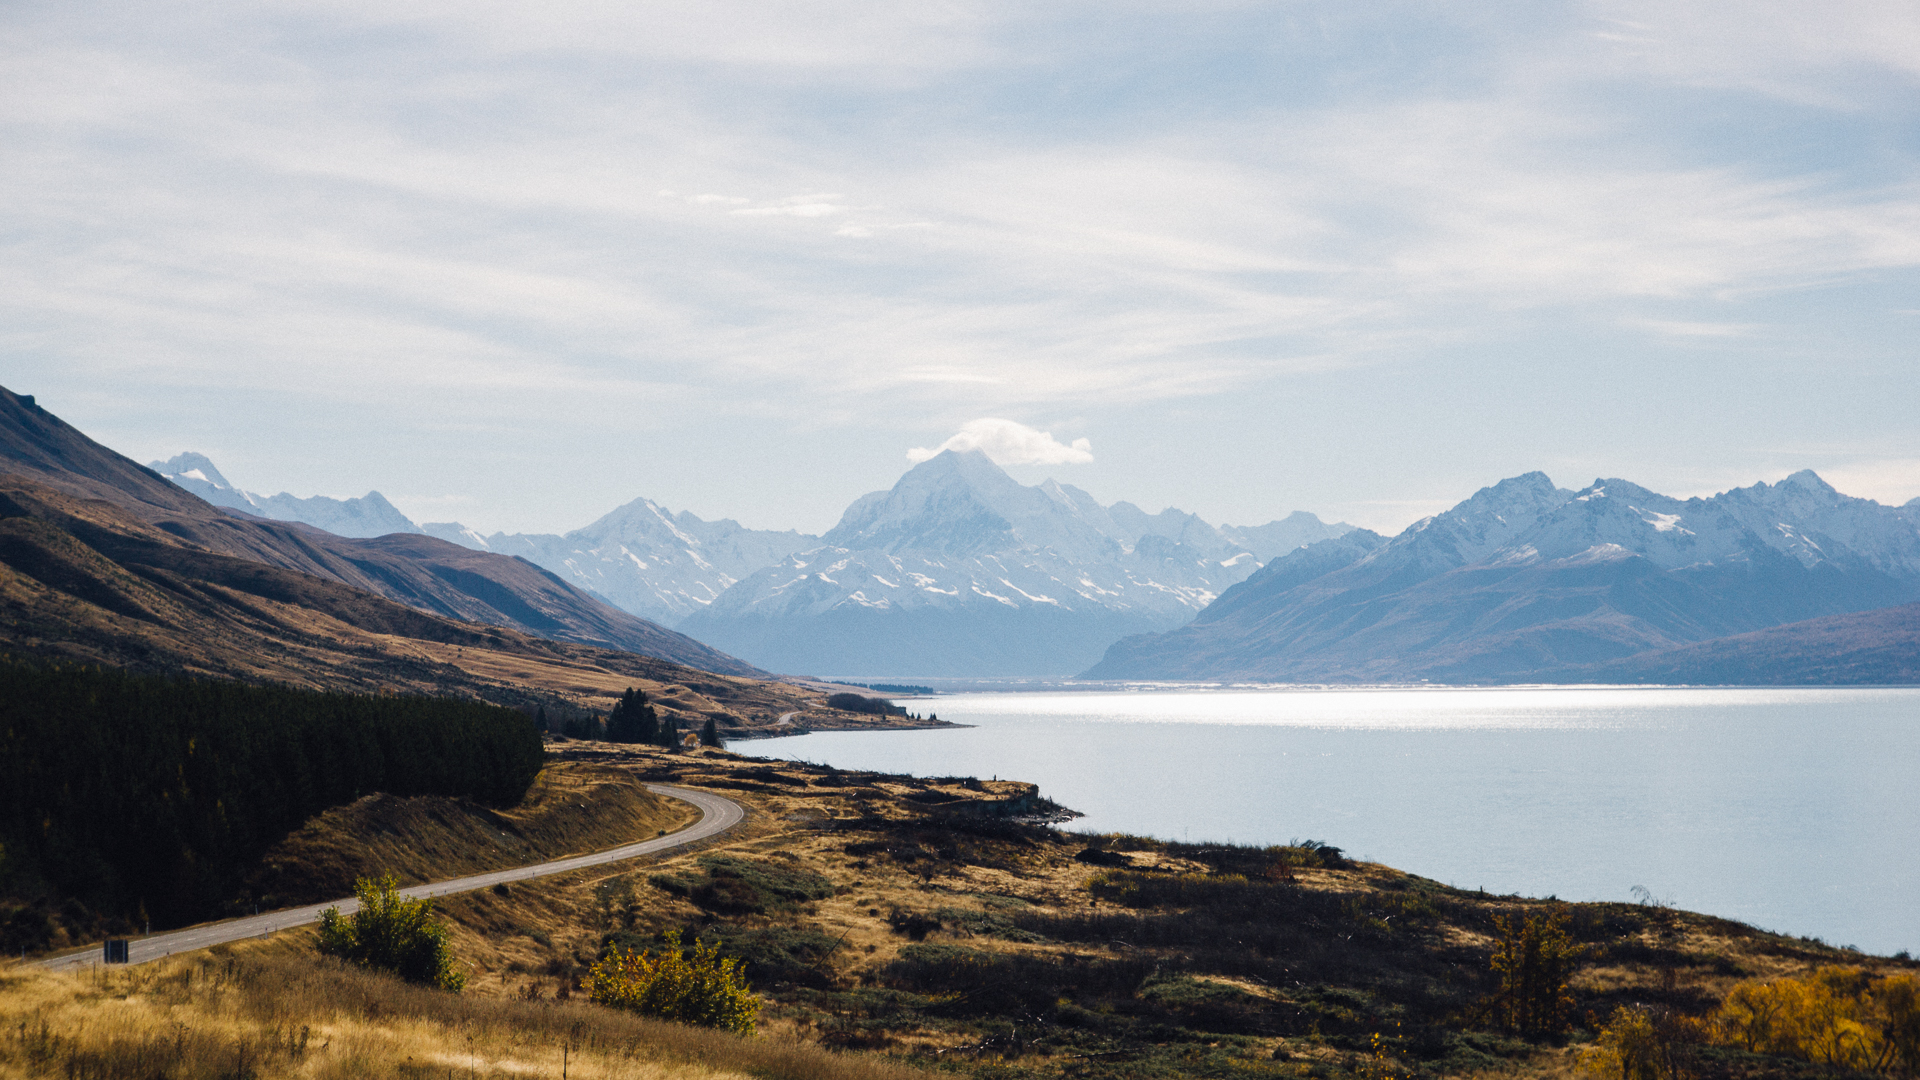 South Island, New Zealand - Peter's Lookout, Lake Pukaki